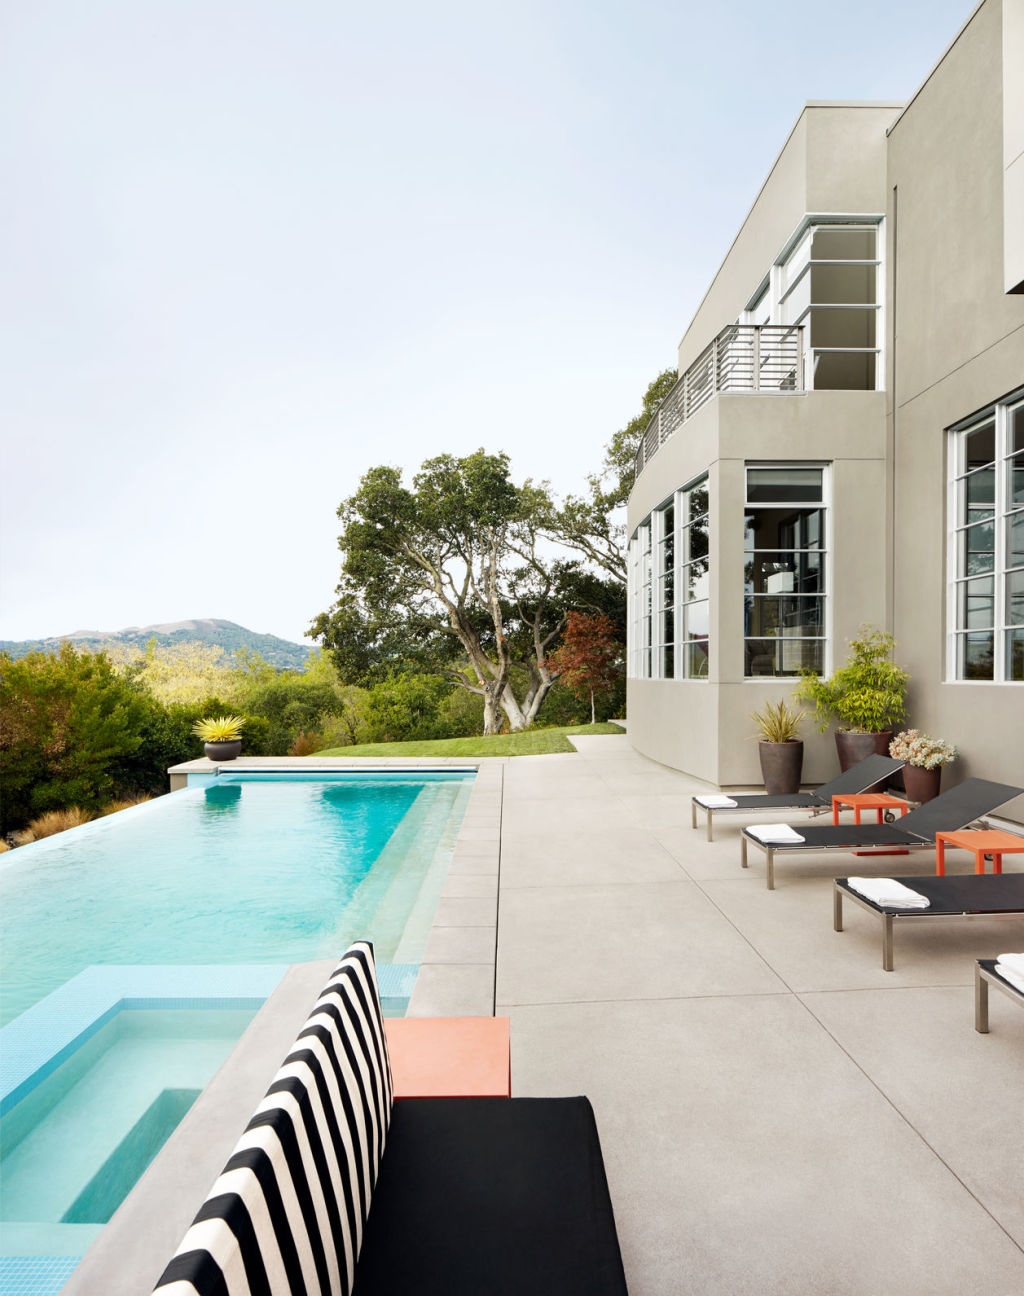 The jury is out on whether a pool helps or hinders a sale.